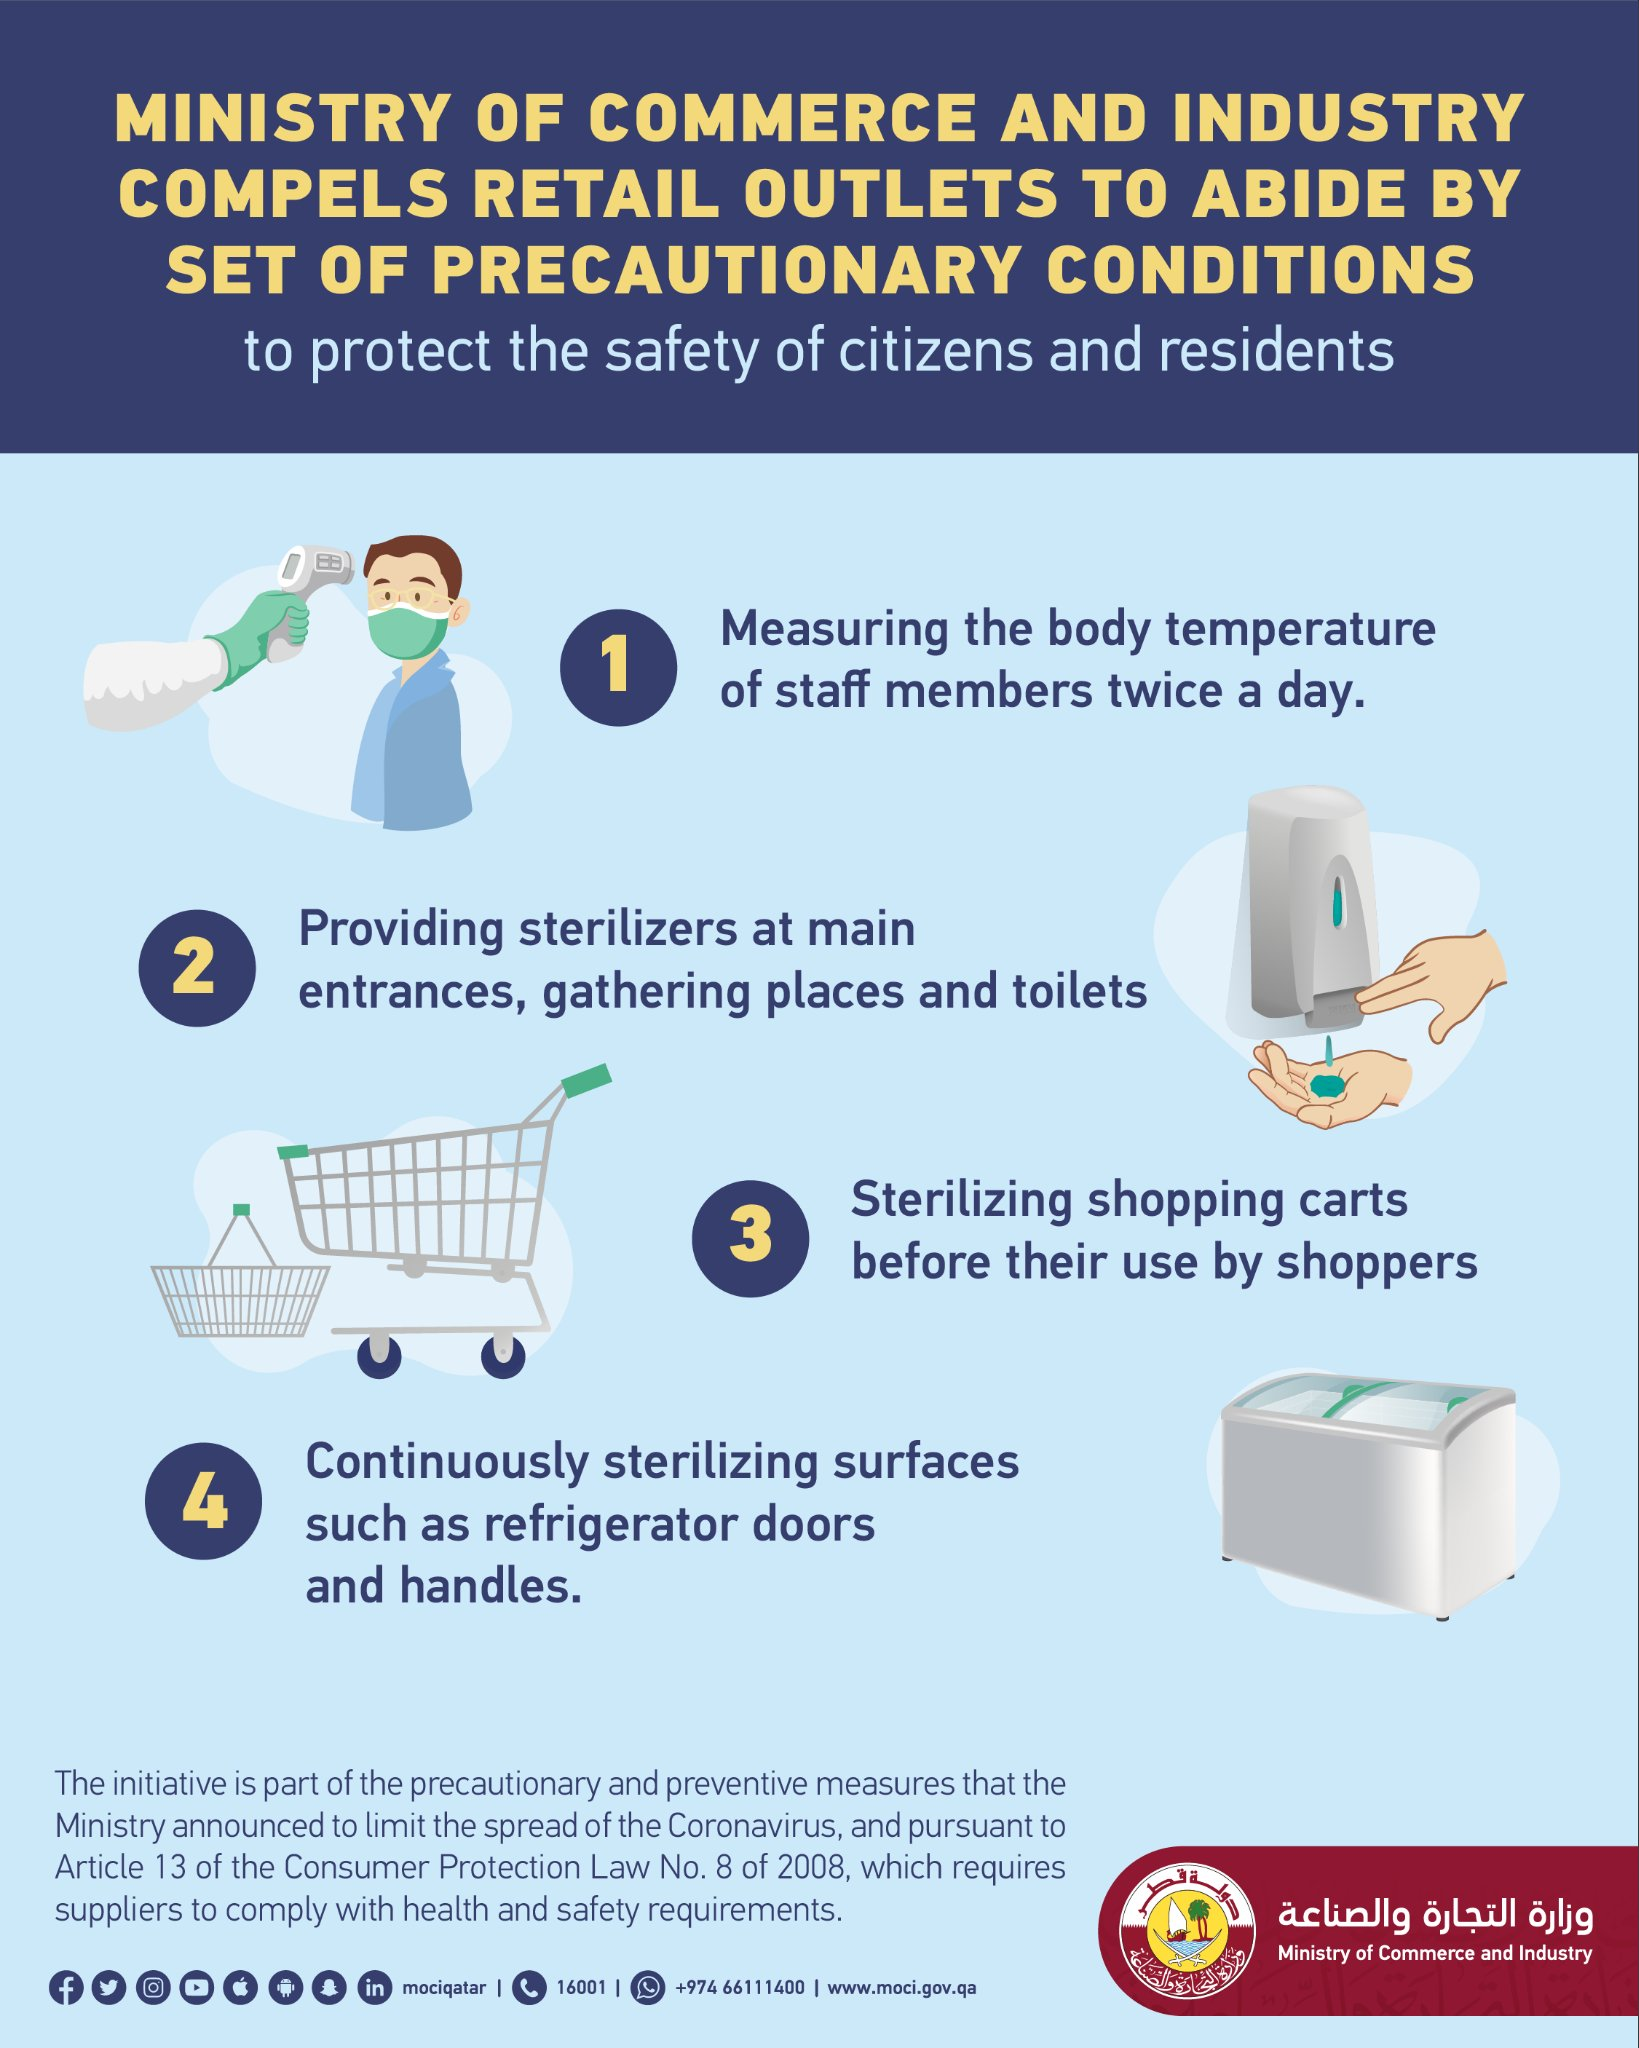 Ministry compels retail outlets to abide by set of precautionary conditions to protect safety of citizens and residents